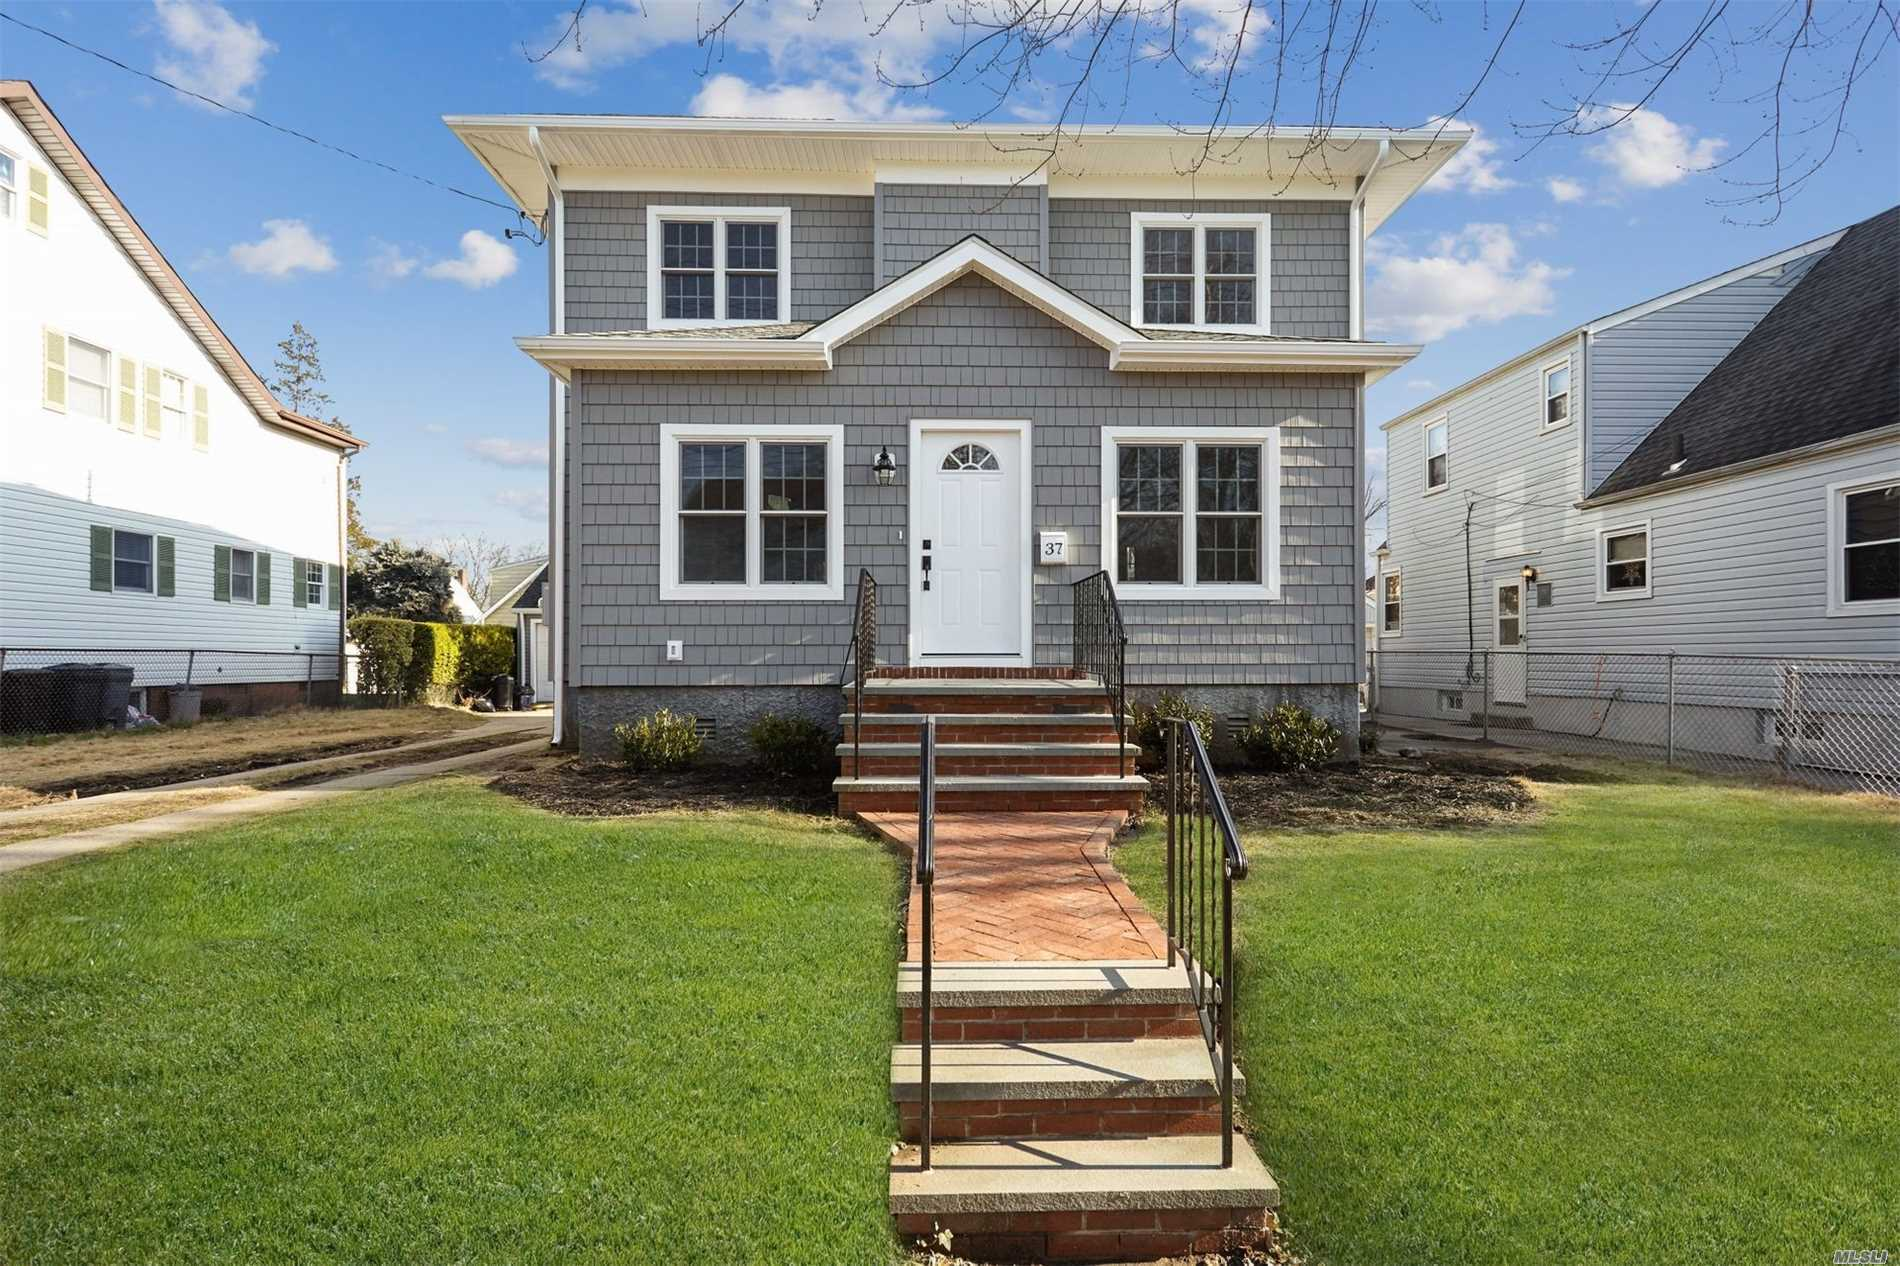 New To The Market!! Completely Renovated/Expanded Colonial, 4 Bedrooms & 2.5 Baths On Spacious 60X100 Lot. All New Electric(200 Amp), Plumbing, Heating/Central Air Conditioning, Andersen Windows, Kitchen Features Large Granite Island, Stainless Steel Appliances, Oak Hardwood Floors Throughout, 9 Ft Ceilings, High Hat Led Lighting, 2 Car Garage Great For Work Room/Storage. Exterior Features Large Property With Rear Patio W/Pavers. All New Roof/Siding, New Sheetrock And Insulation.